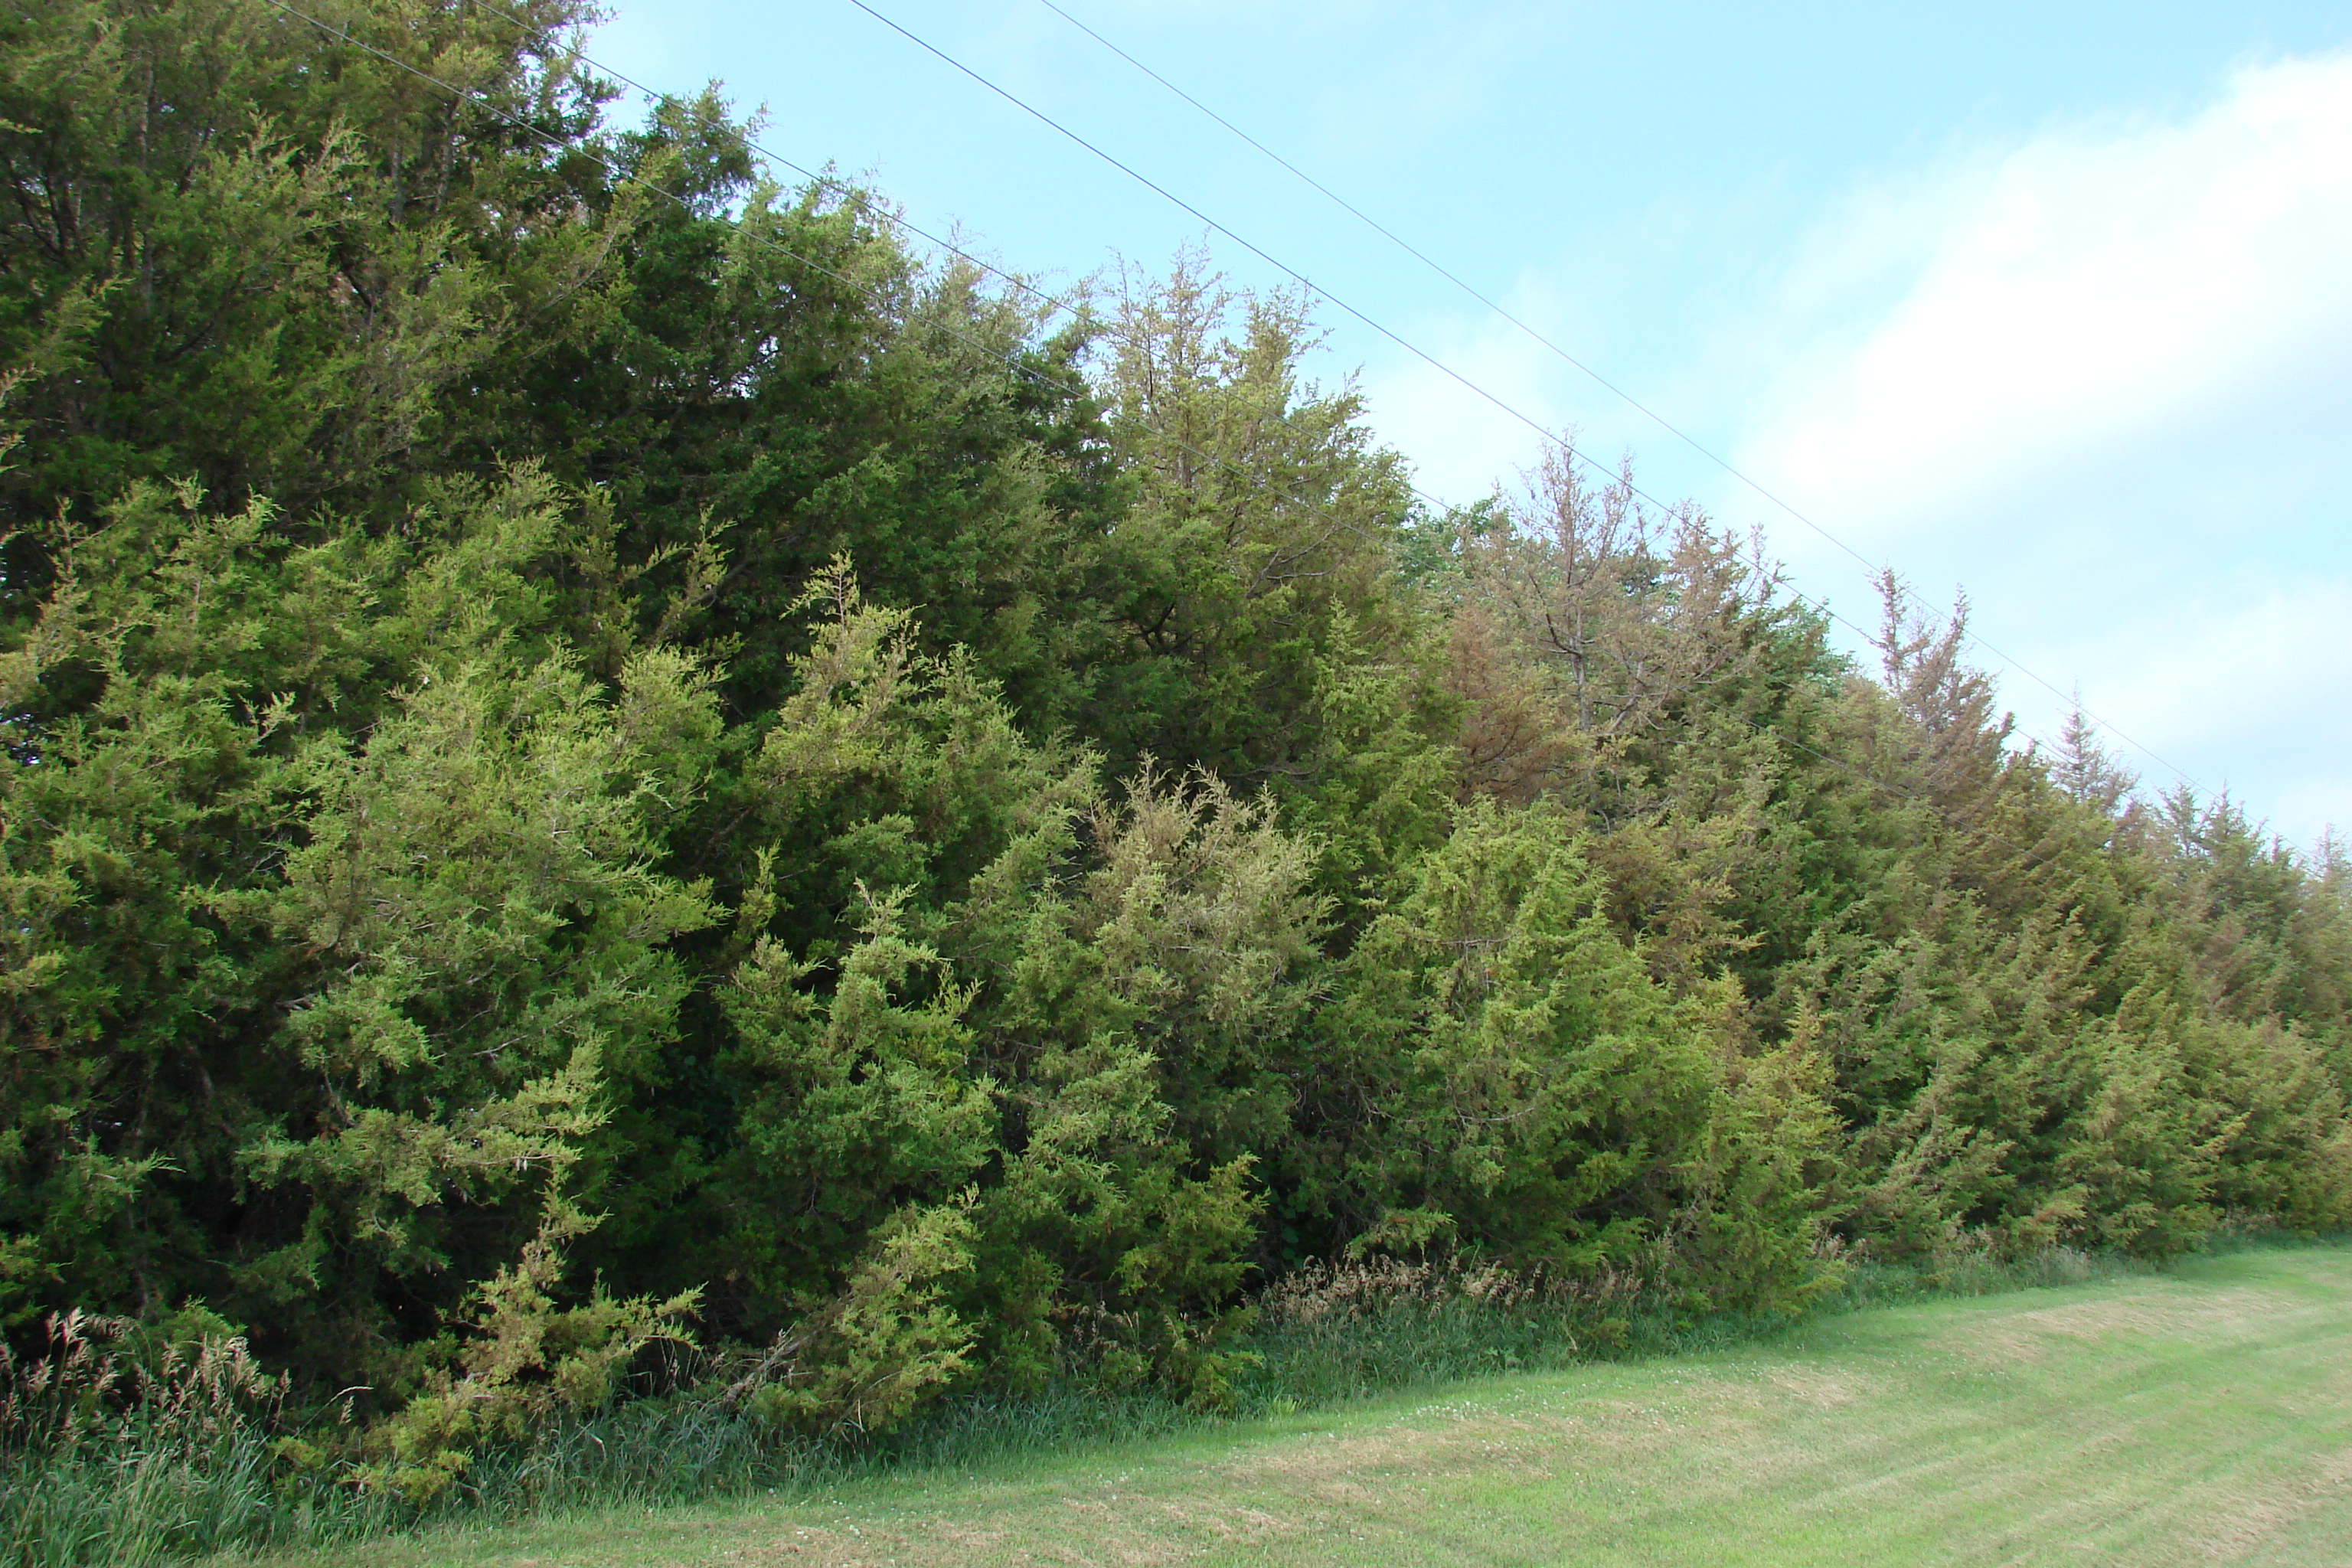 Windbreak that is primarily cedar